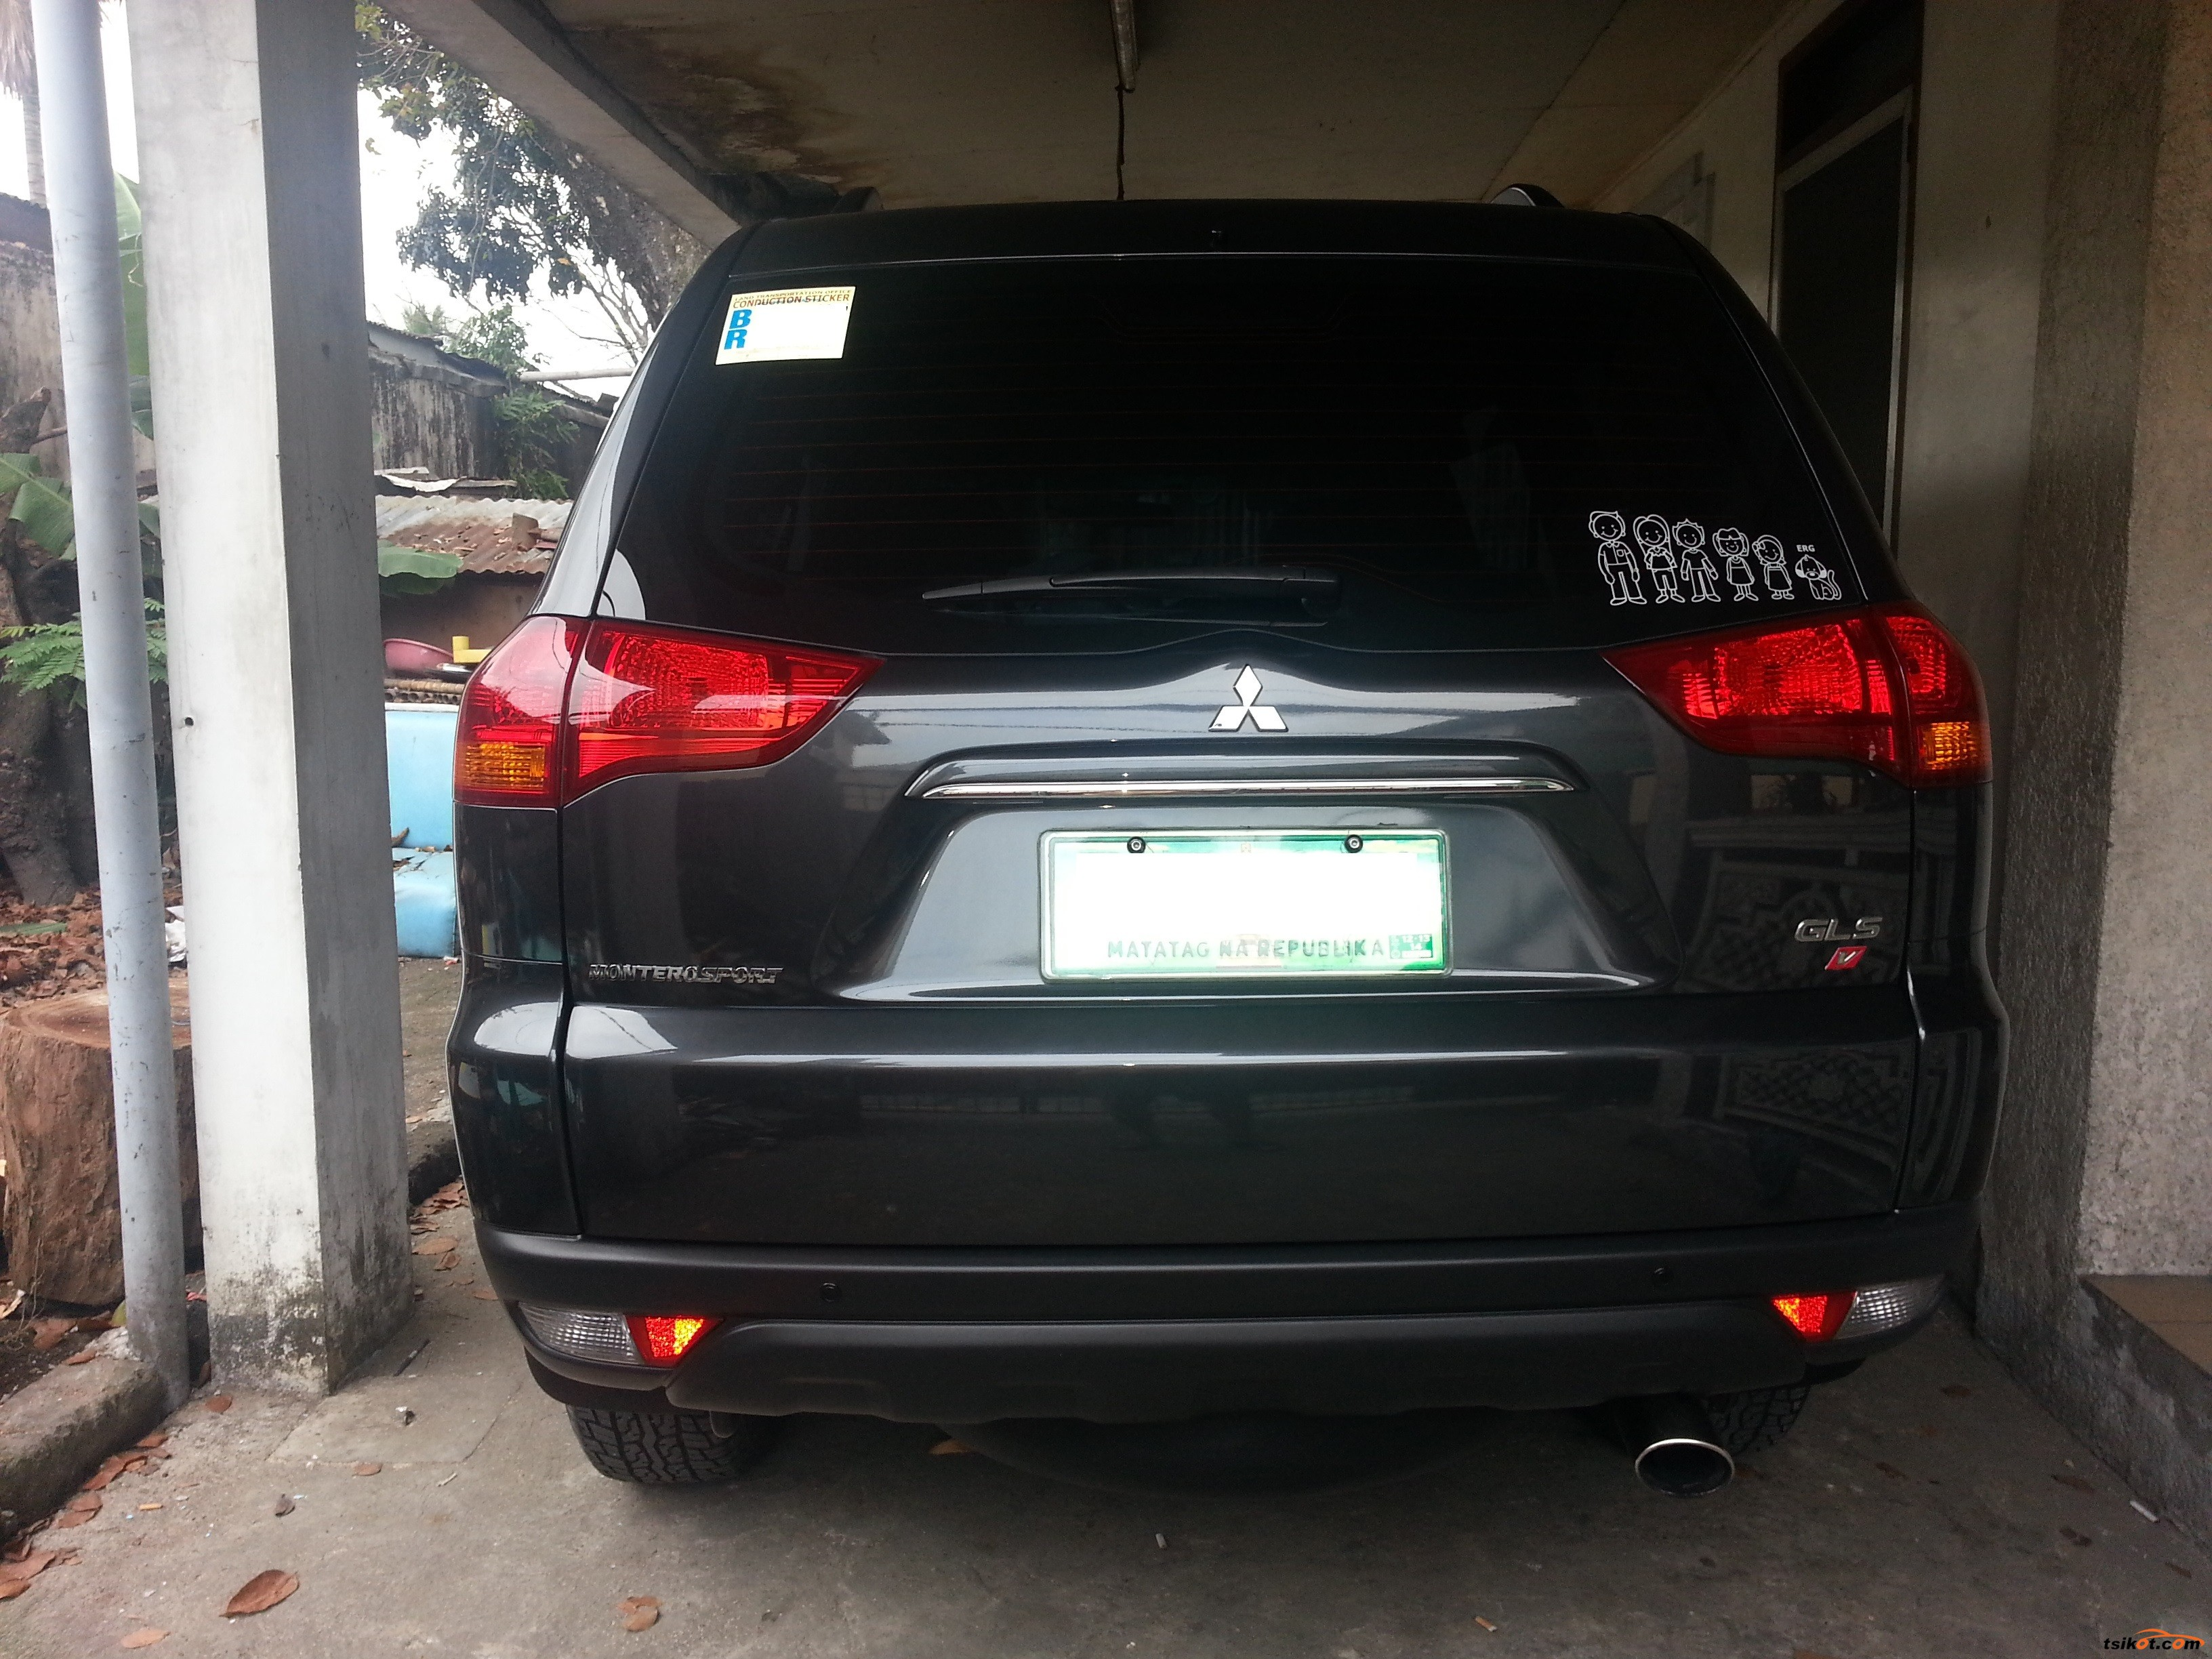 Mitsubishi Montero 2012 - Car for Sale Metro Manila